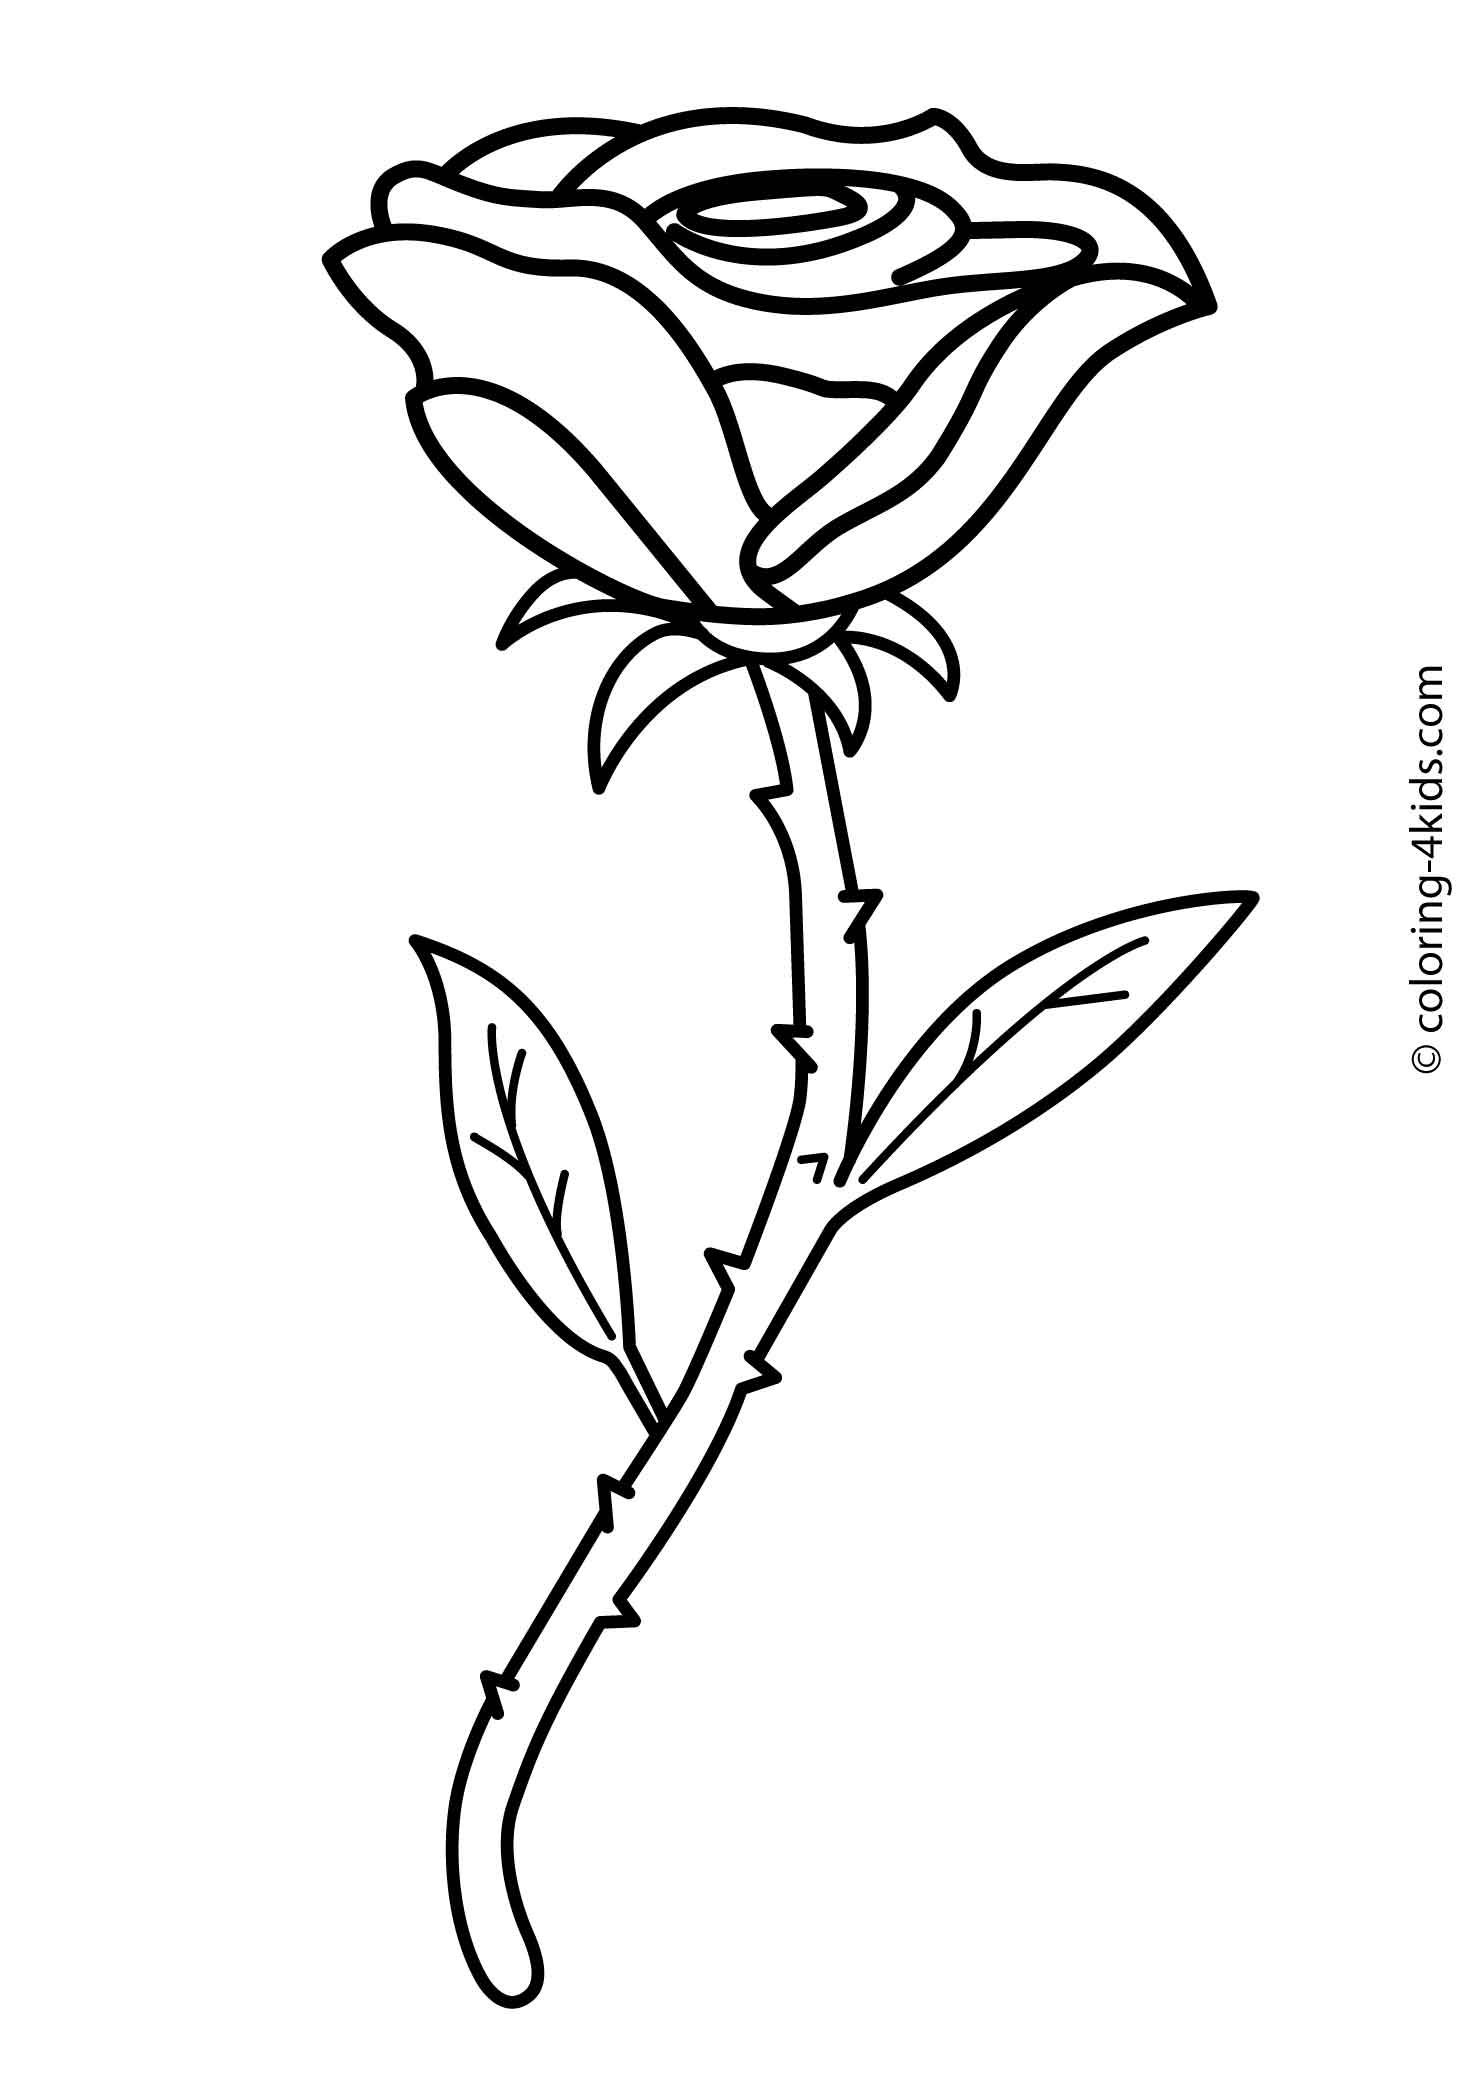 Rose flower coloring pages for kids, printable, 1 | Places to Visit ...